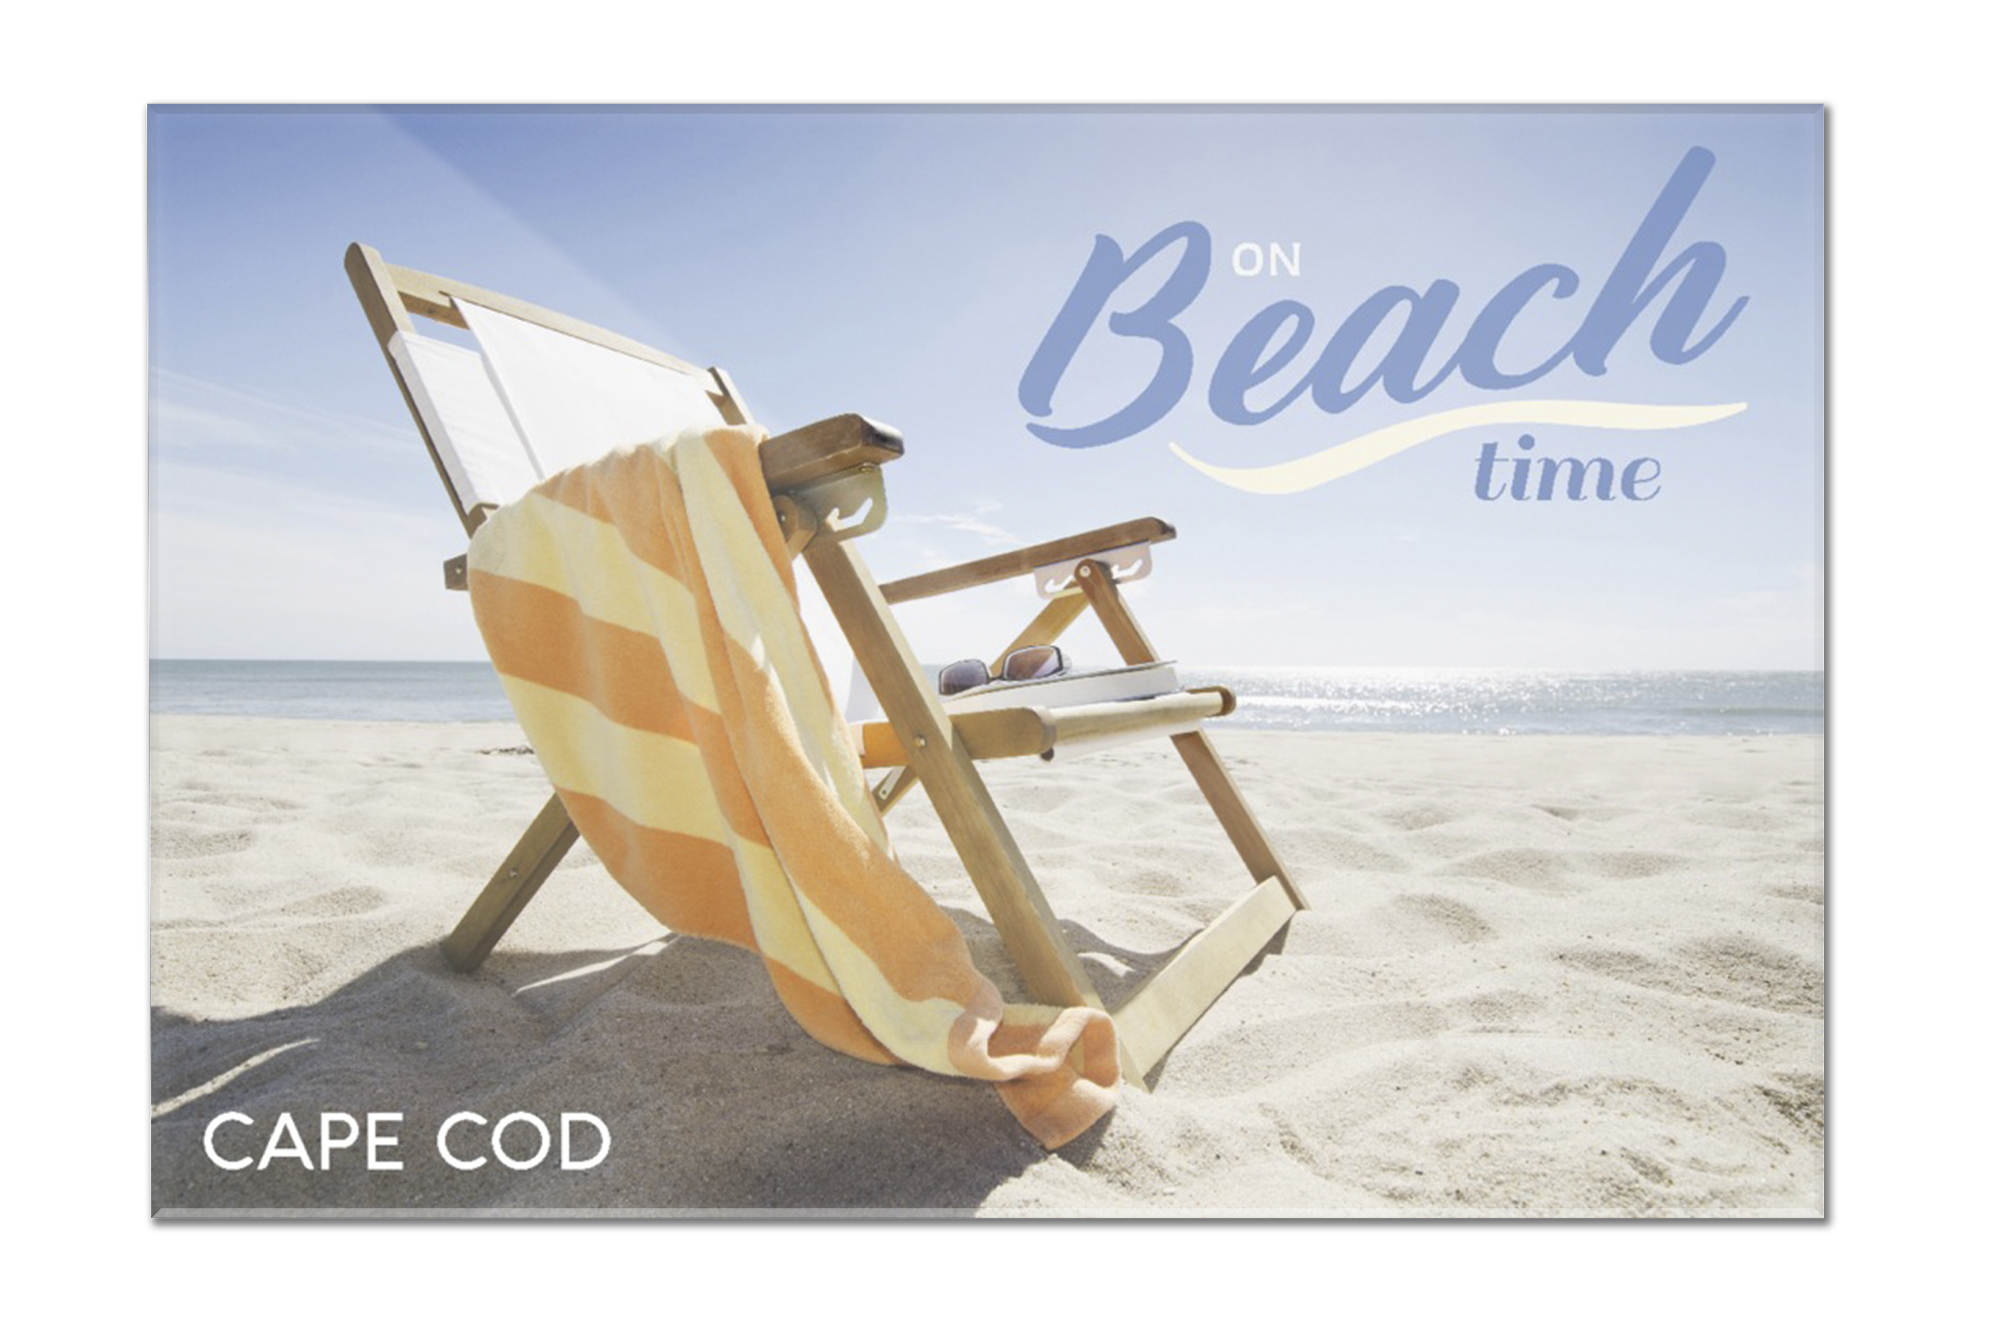 Cape Cod Beach Chair Cape Cod Massachusetts Folding Beach Chair Lantern